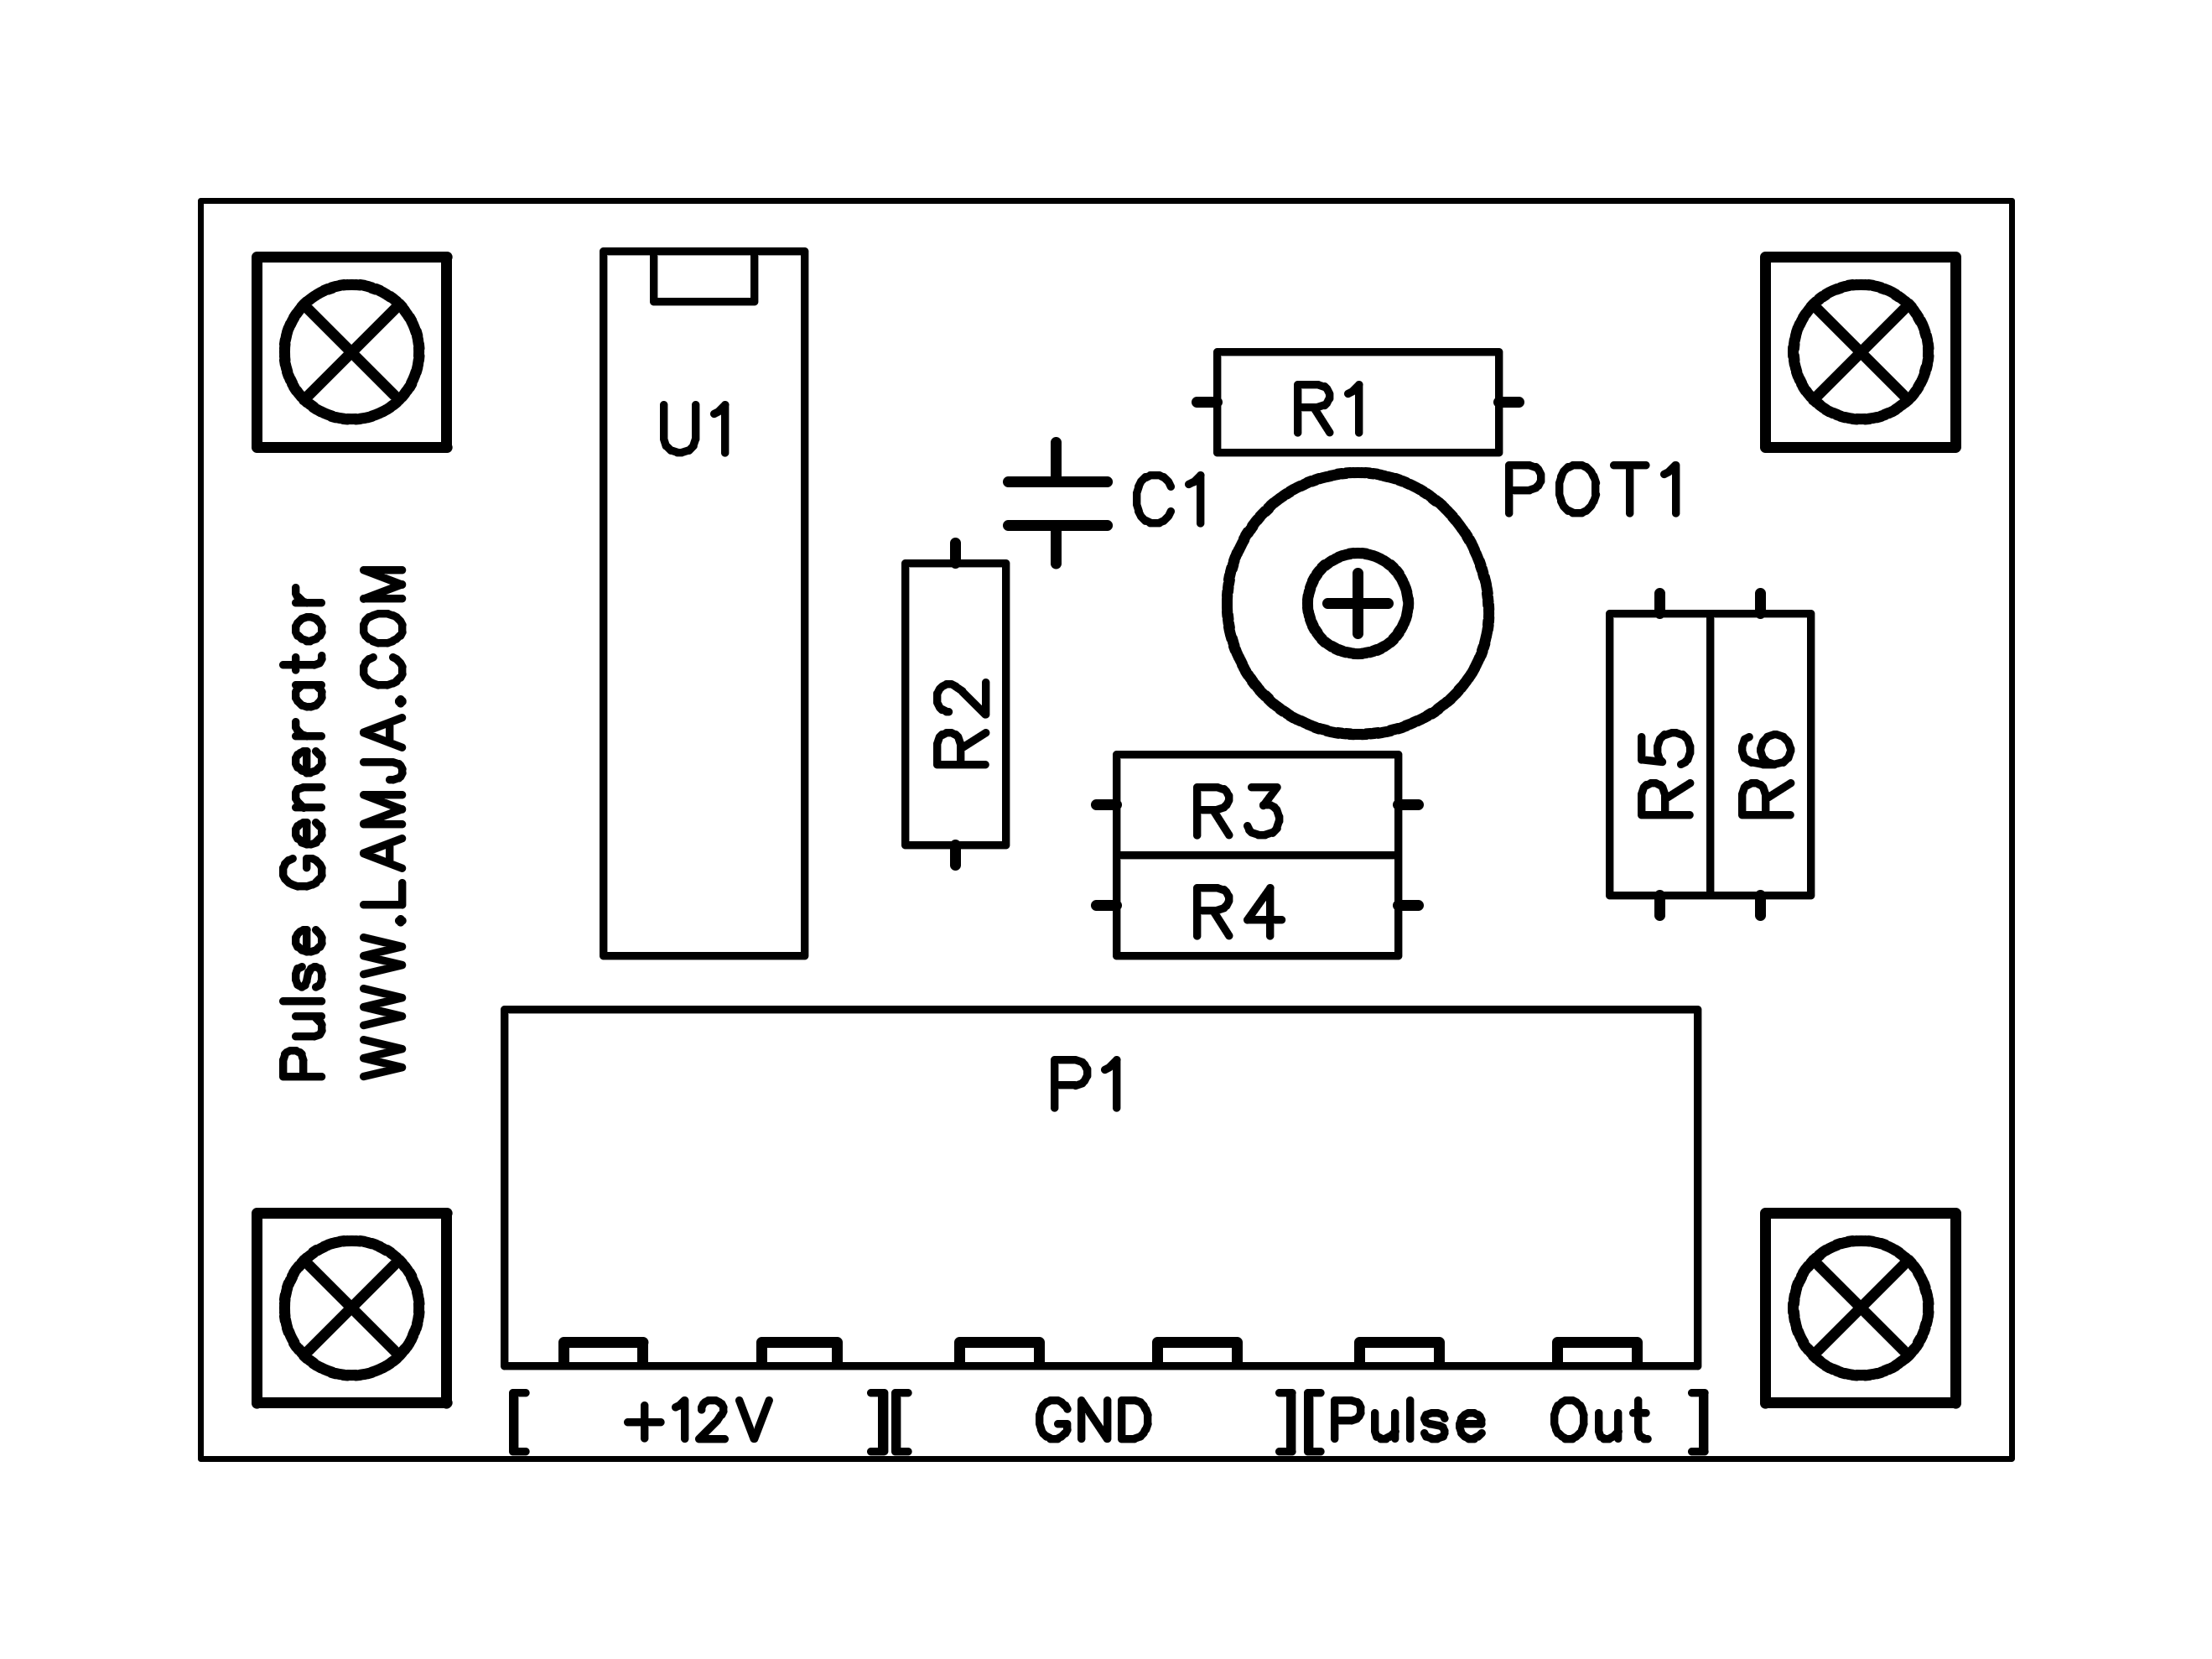 Simple Pulse Generator Using Lm324 Opamp Op Amp Diagram Http Blogfiles Pulsegeneratortopsilk